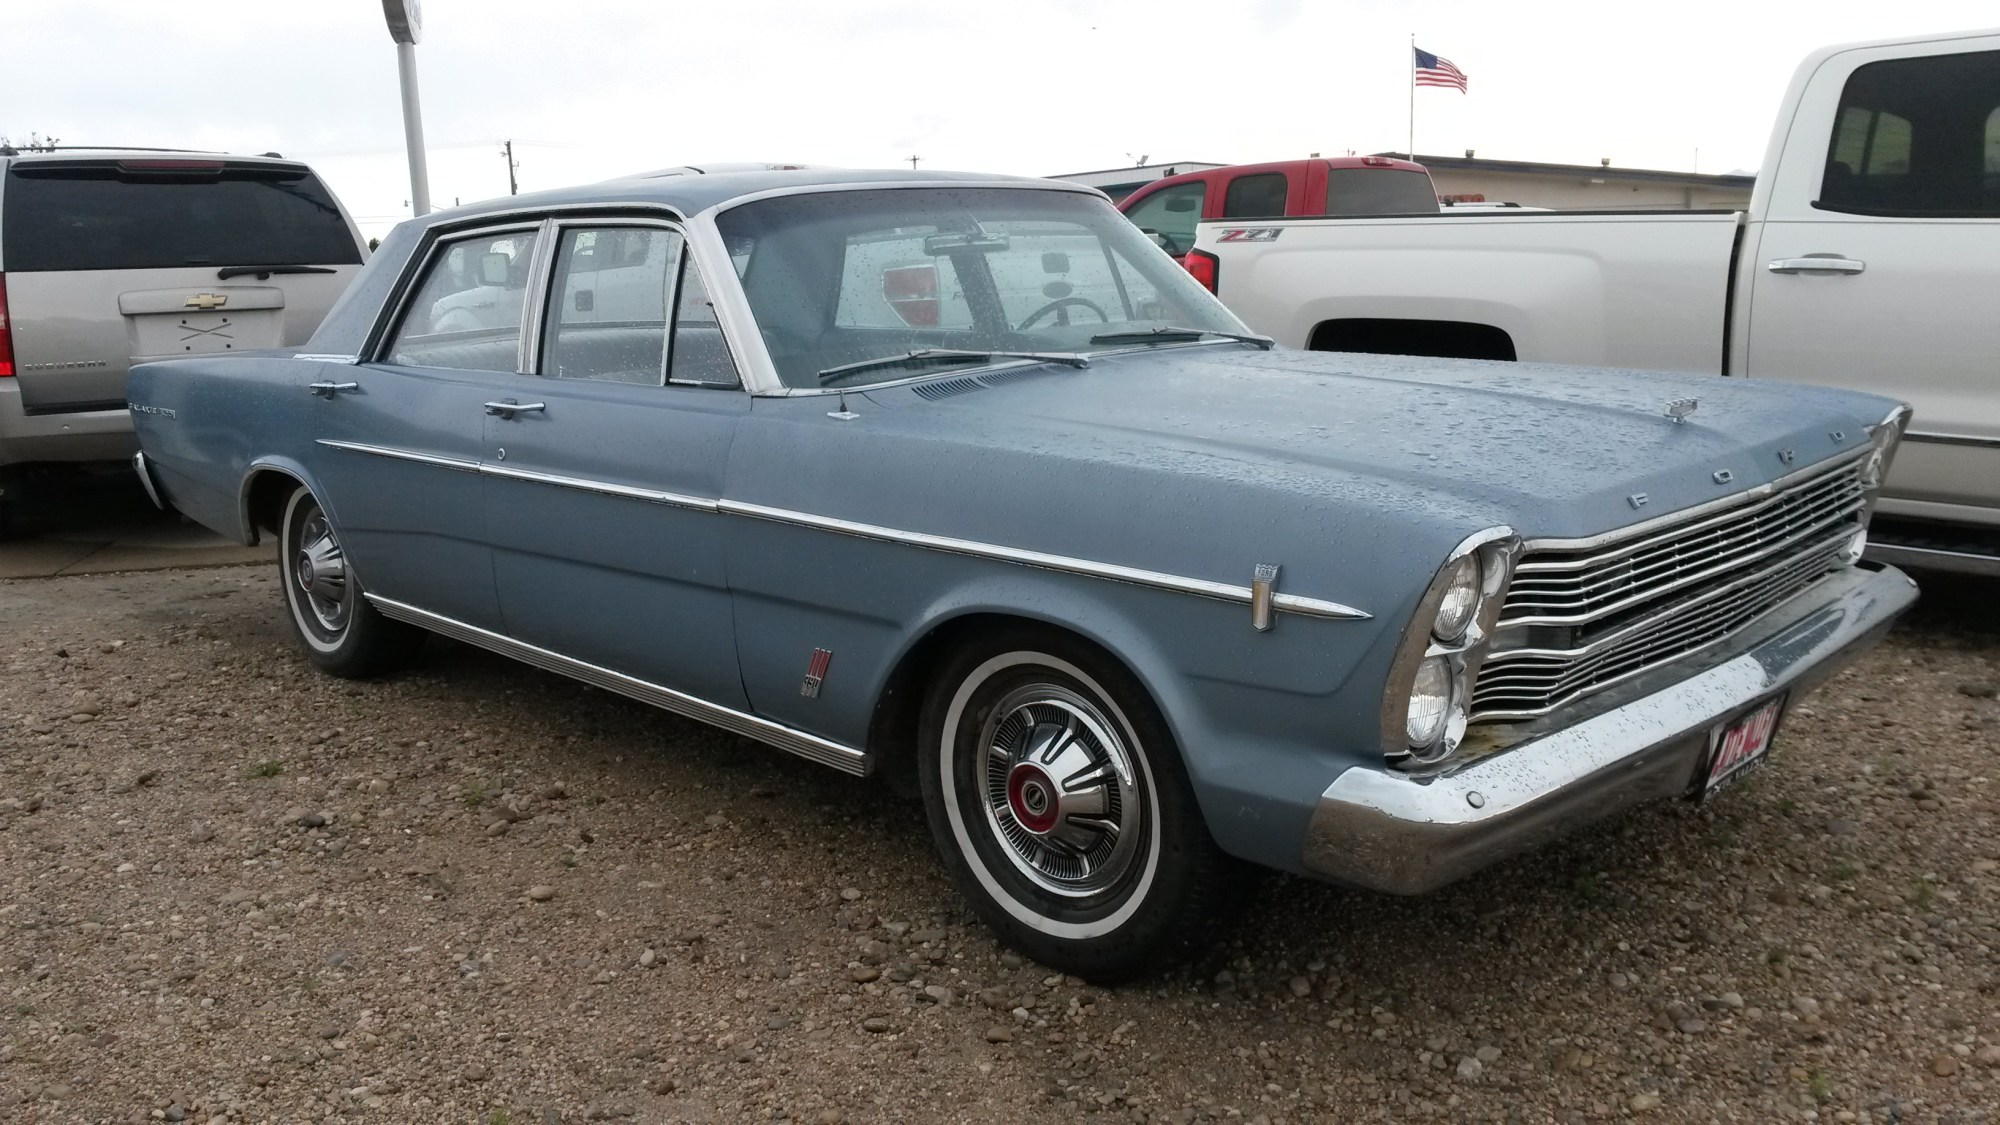 hight resolution of this 1966 ford galaxie 500 was just traded in to a dealership interested